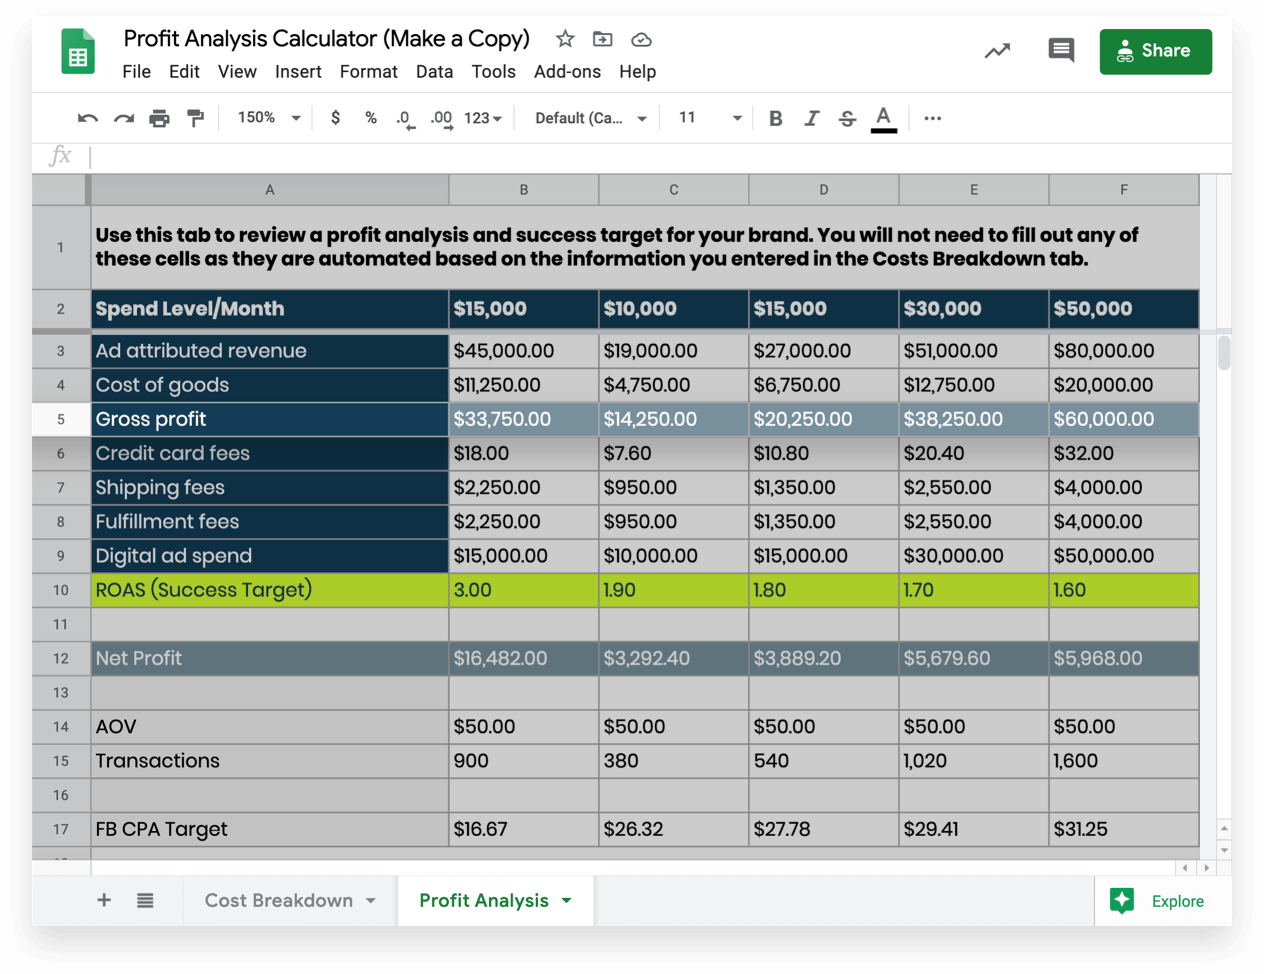 Profit Analysis Calculator: Gross Profit